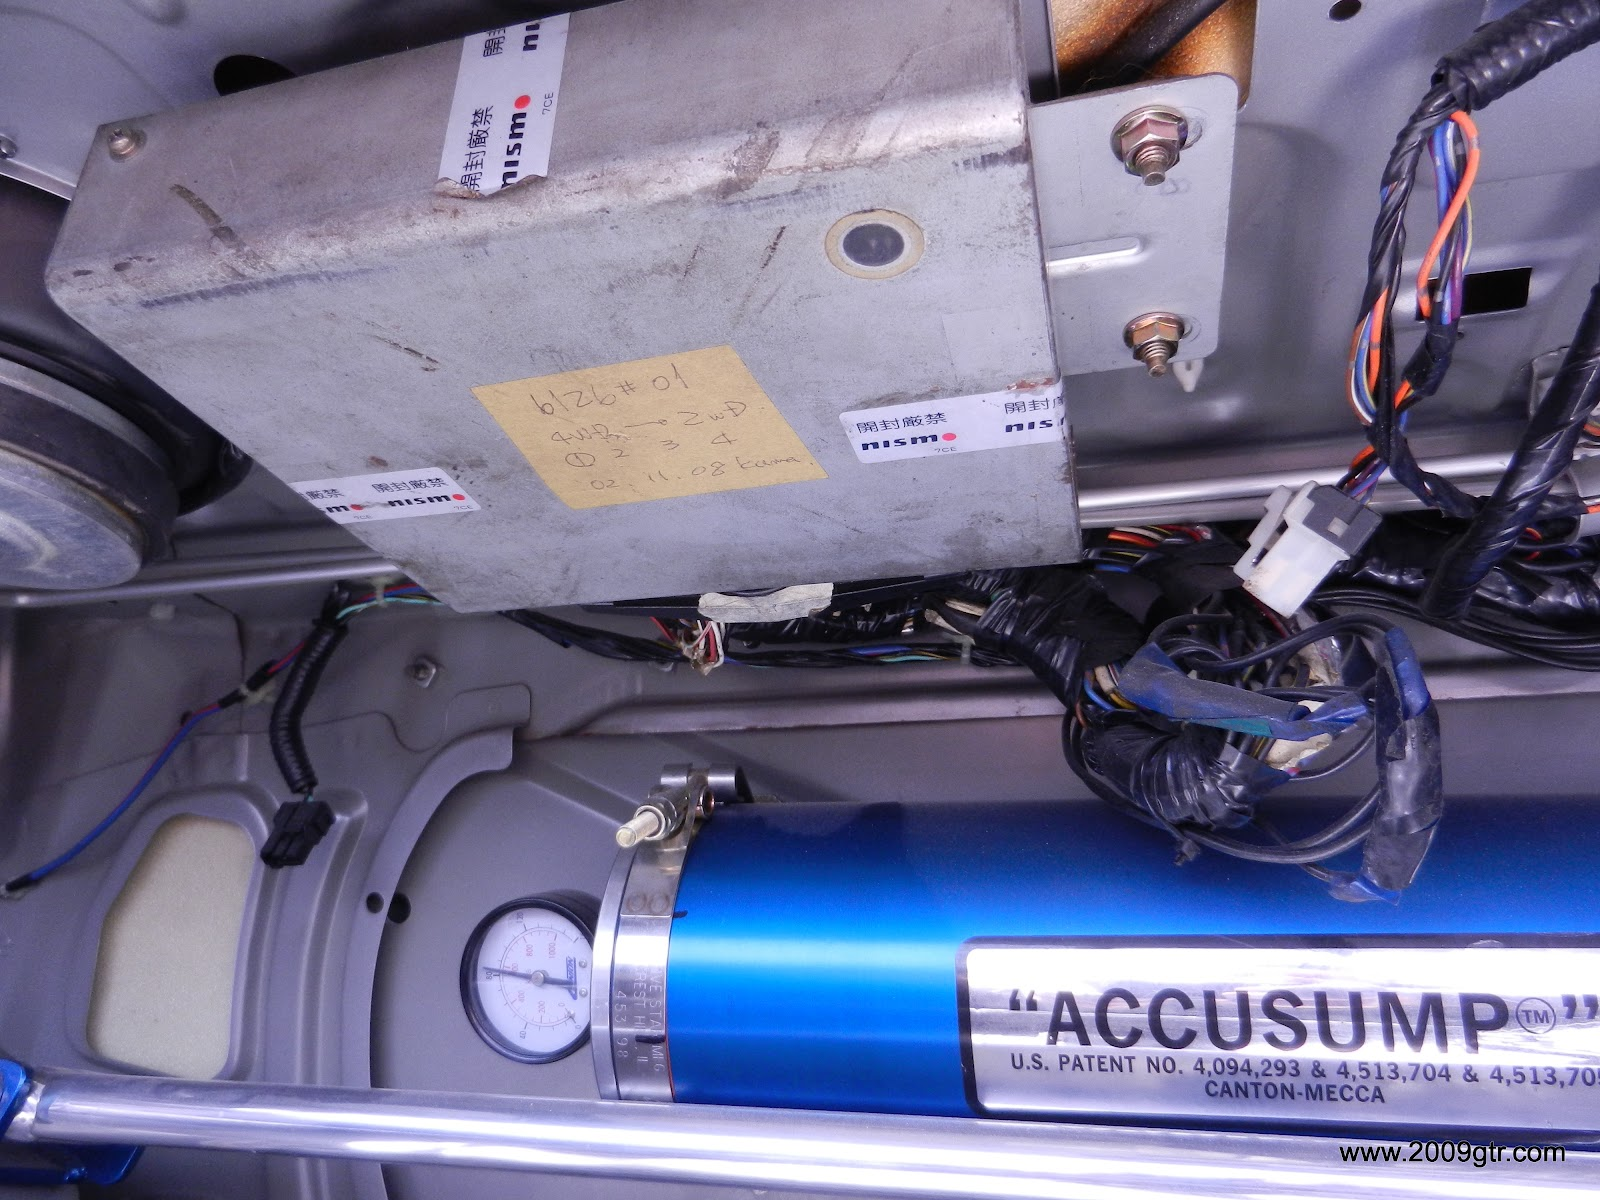 ATTESA ECU in the trunk of an R32. LED window visible on right rear corner